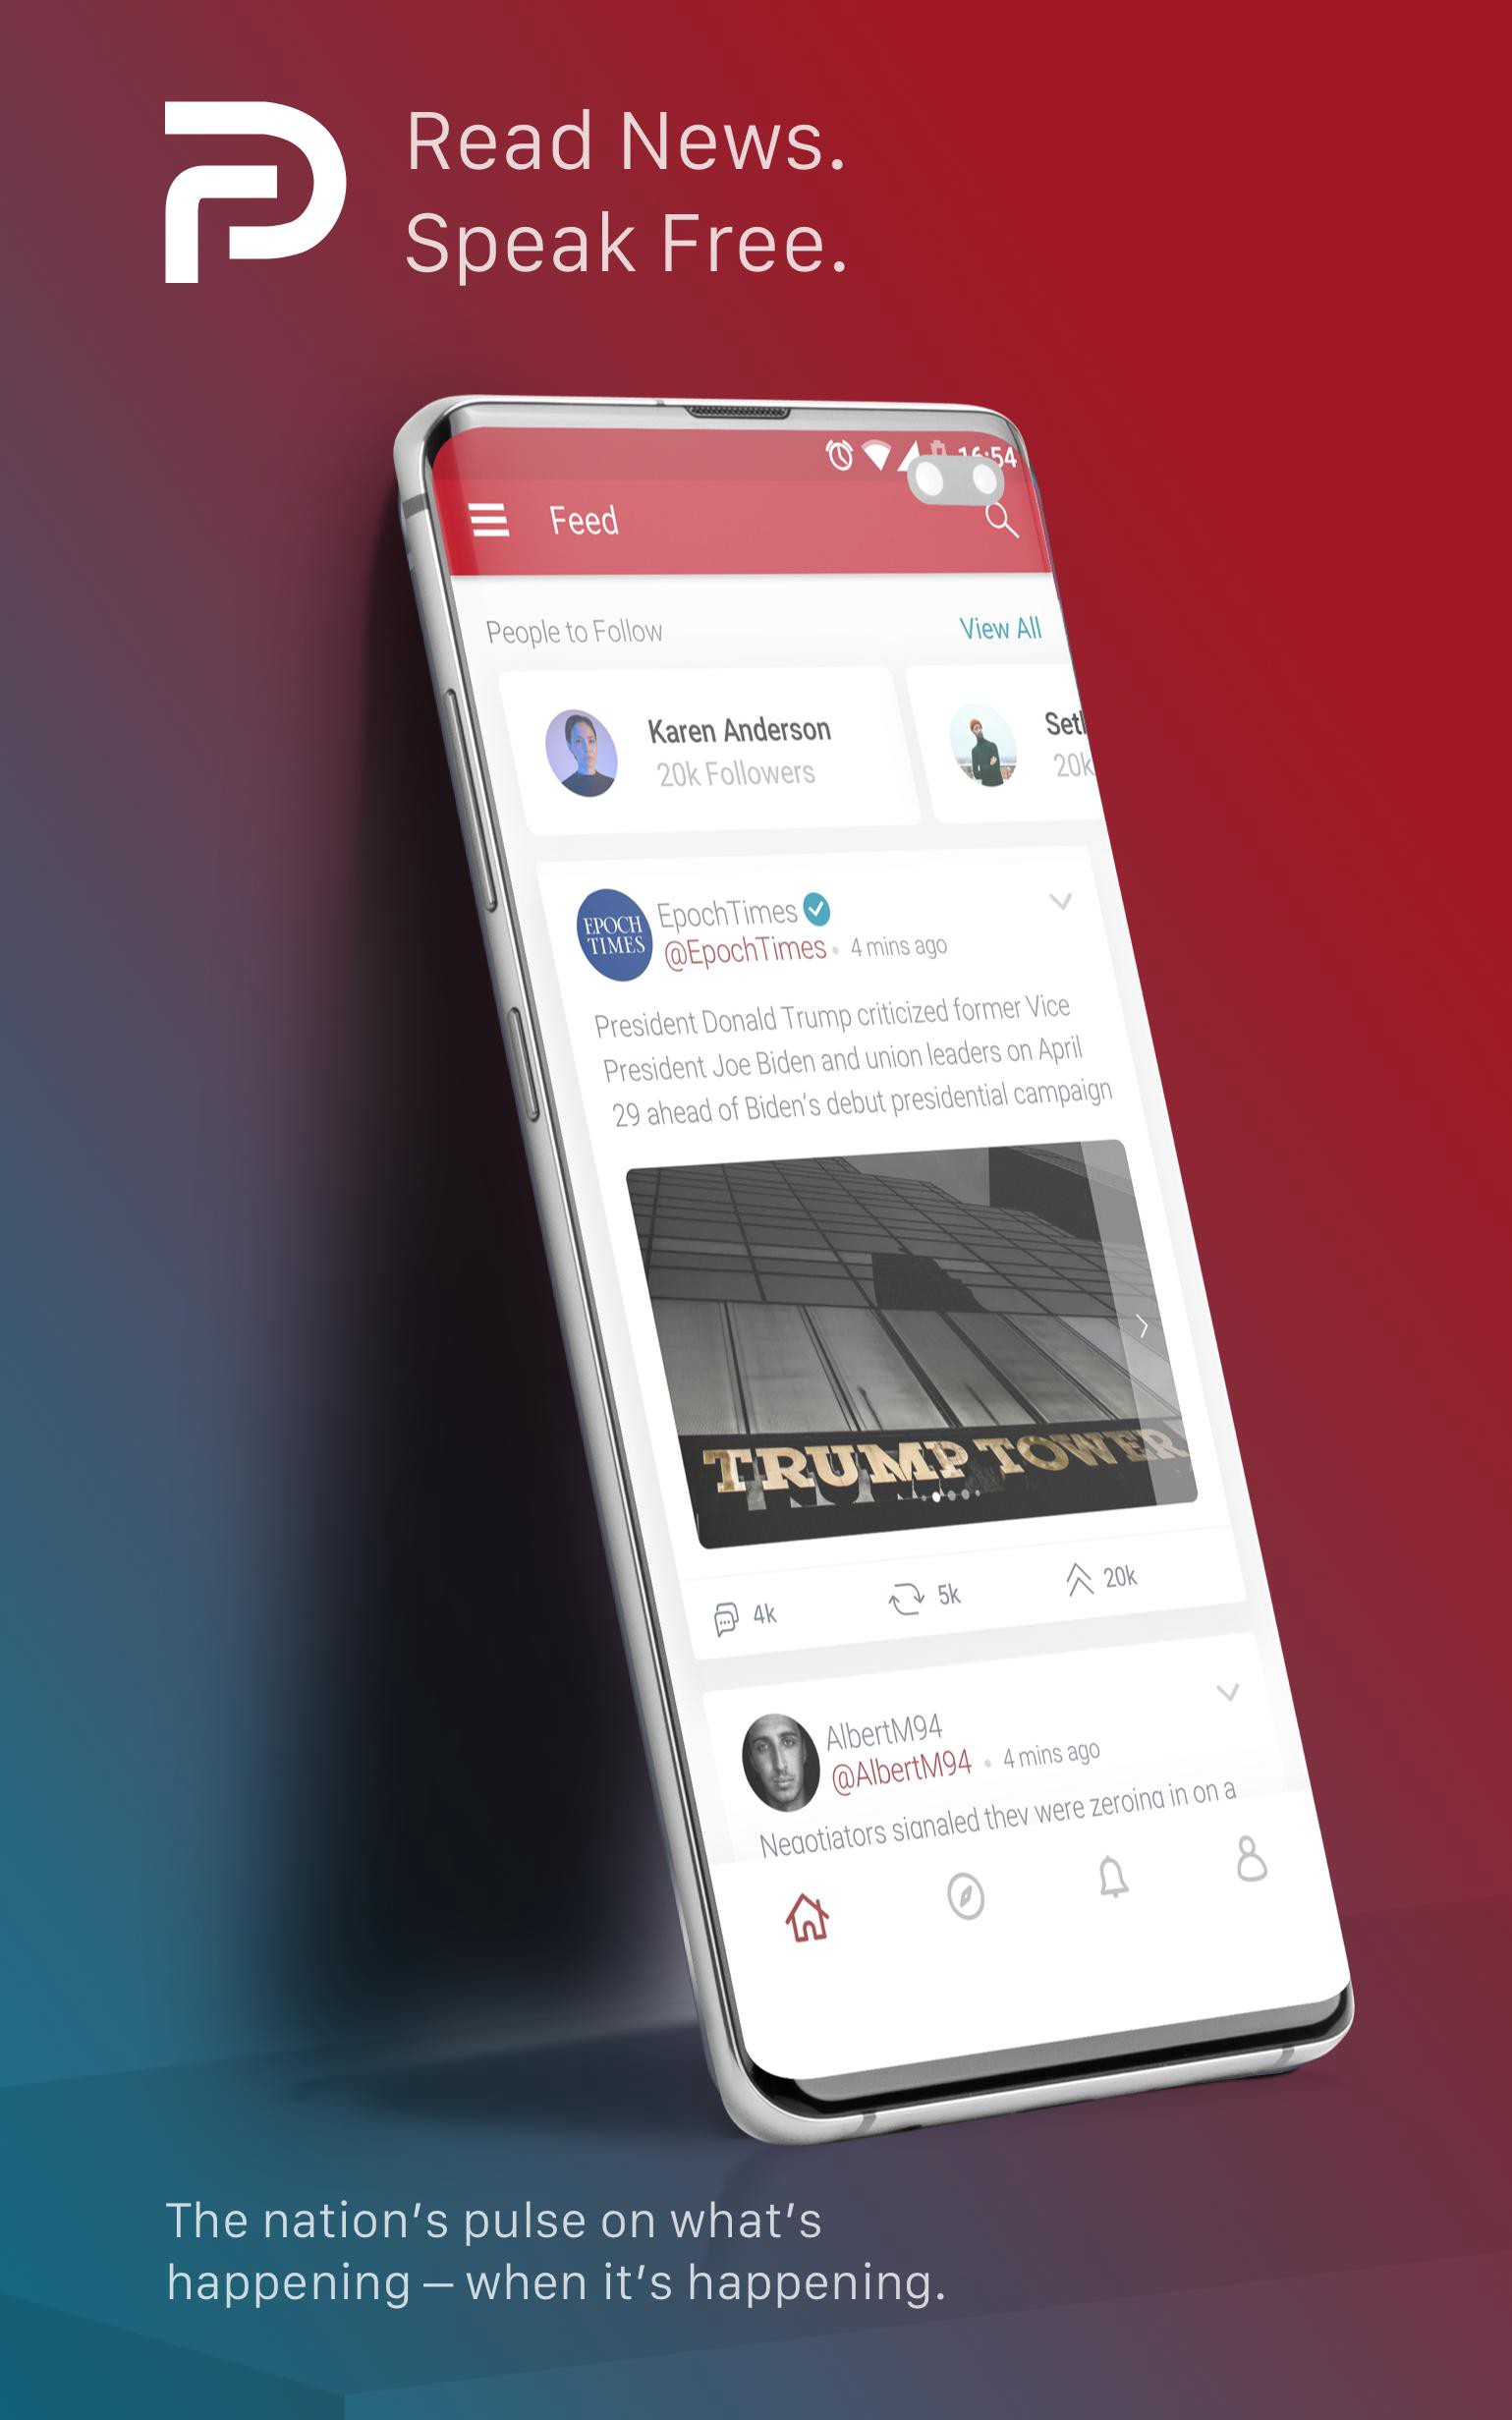 Image of an ad for the social media app, Parler.